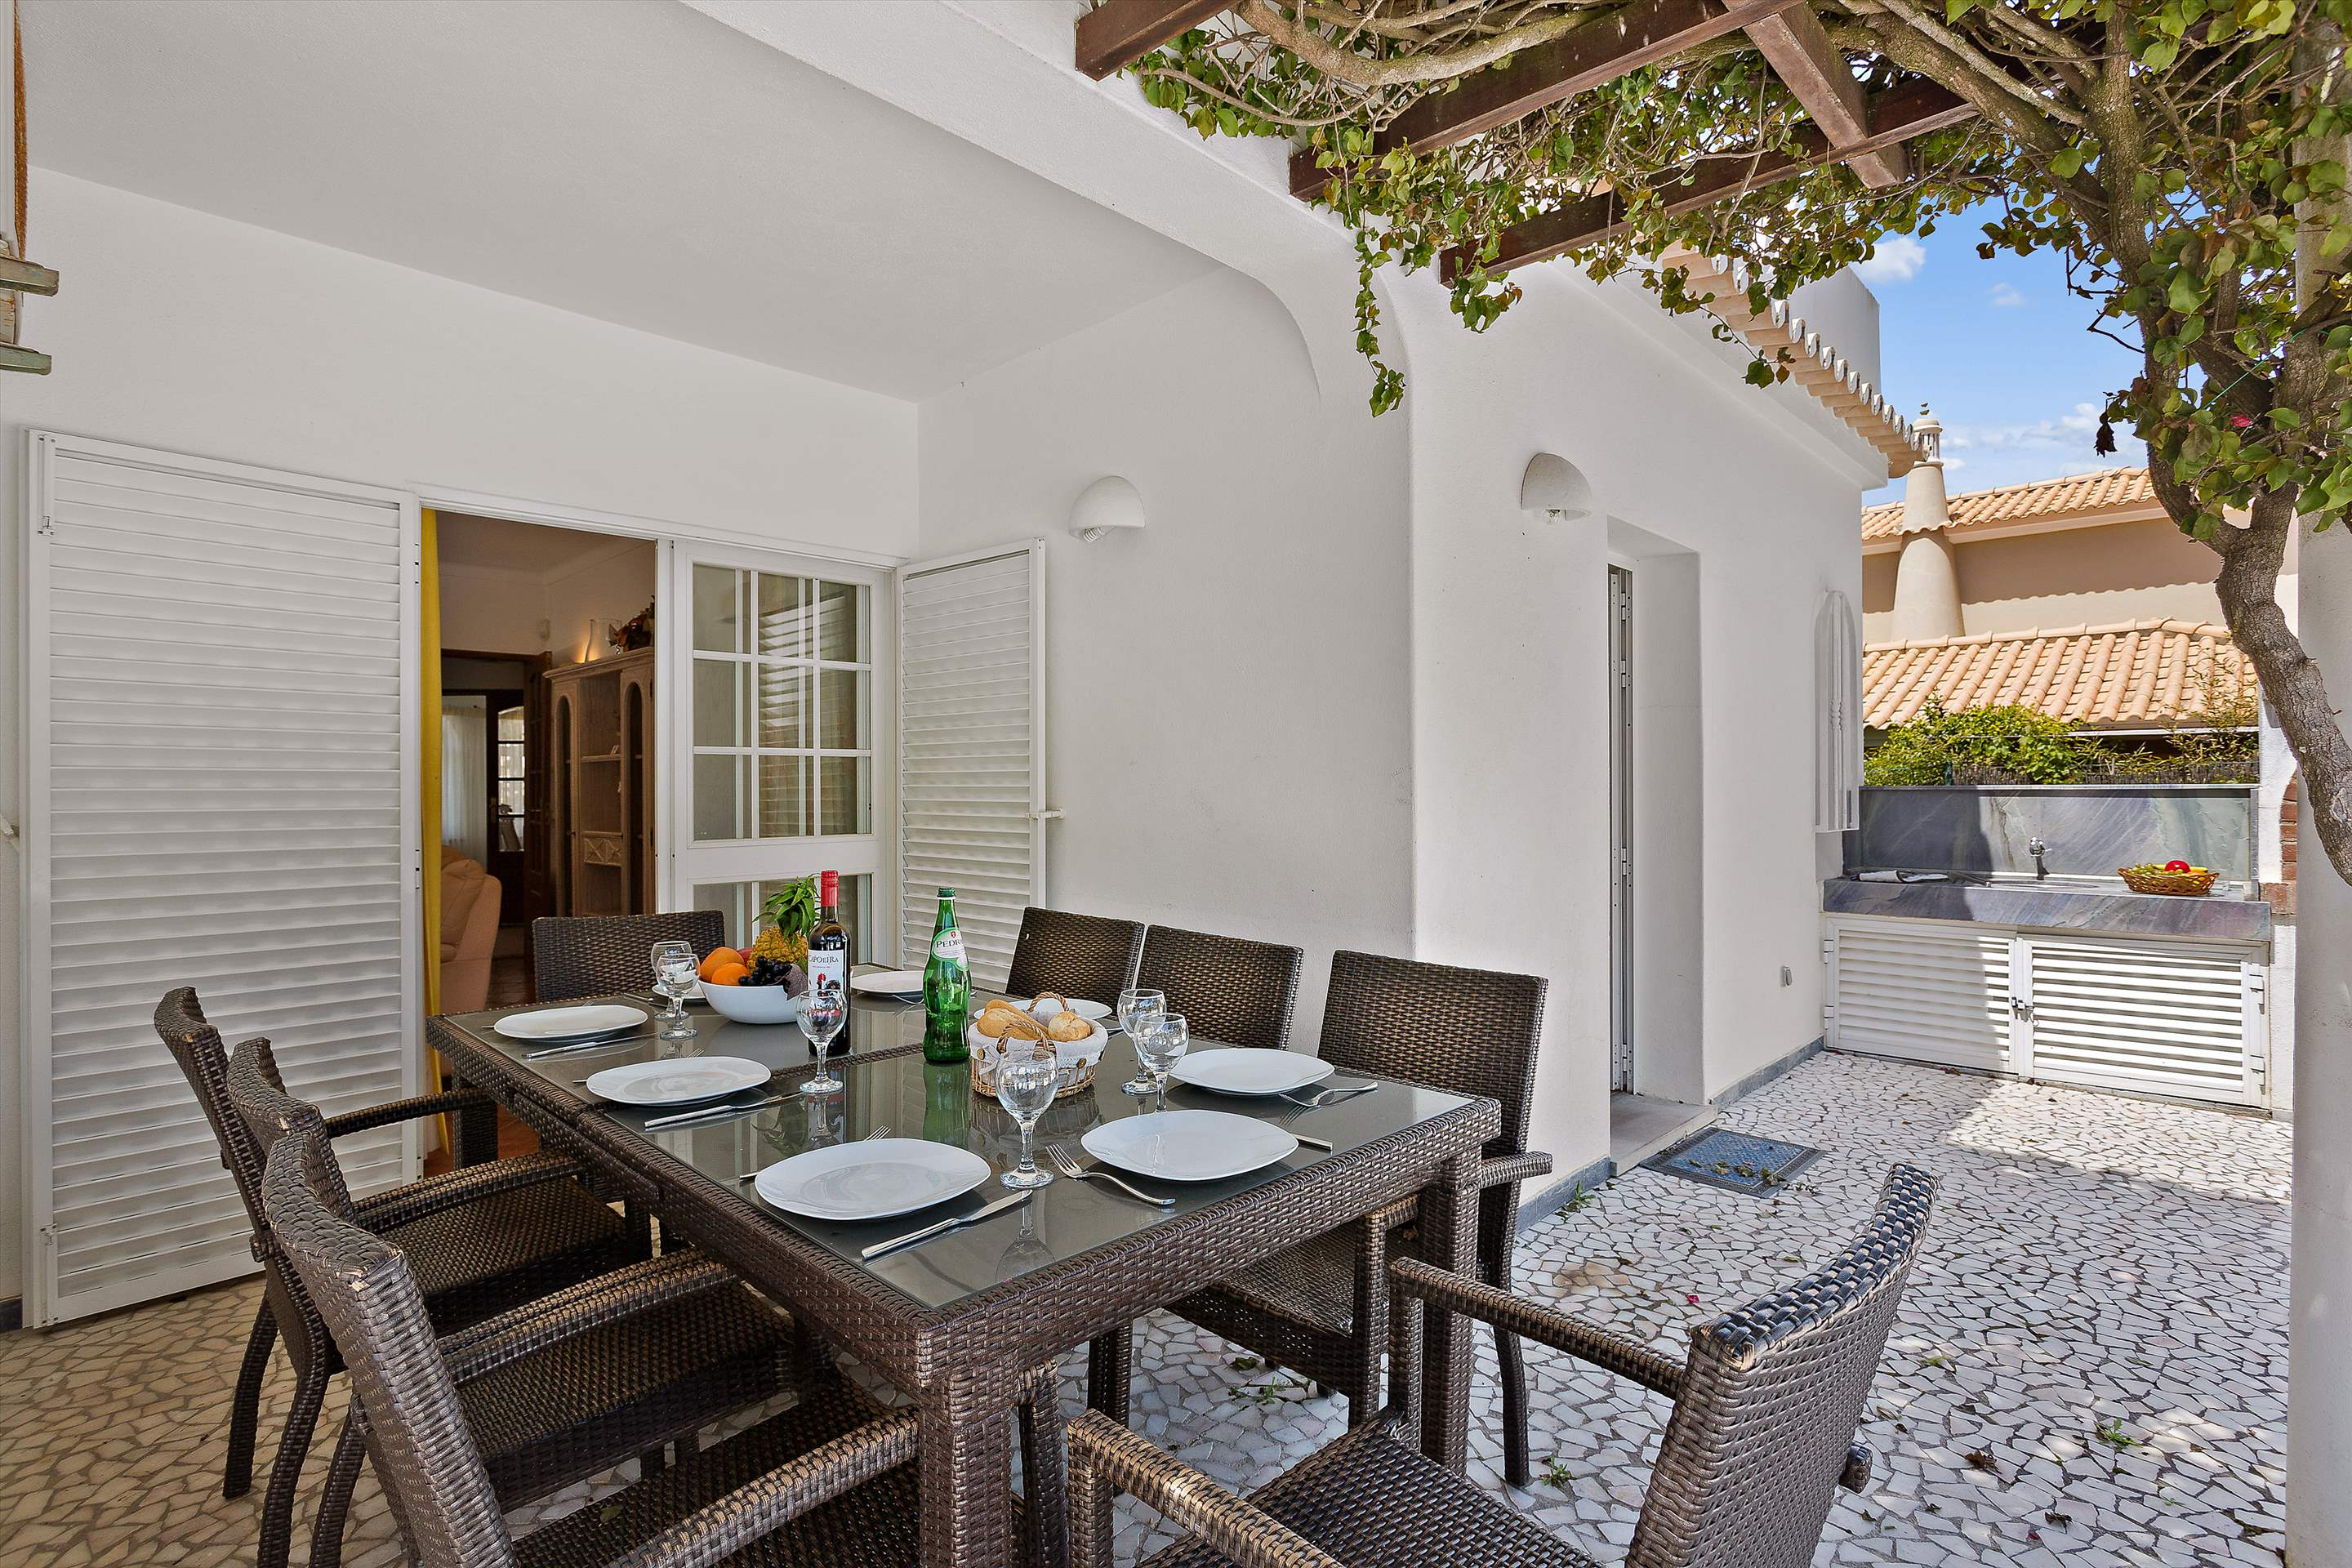 Villa Casablanca, 4 bedroom villa in Vilamoura Area, Algarve Photo #11